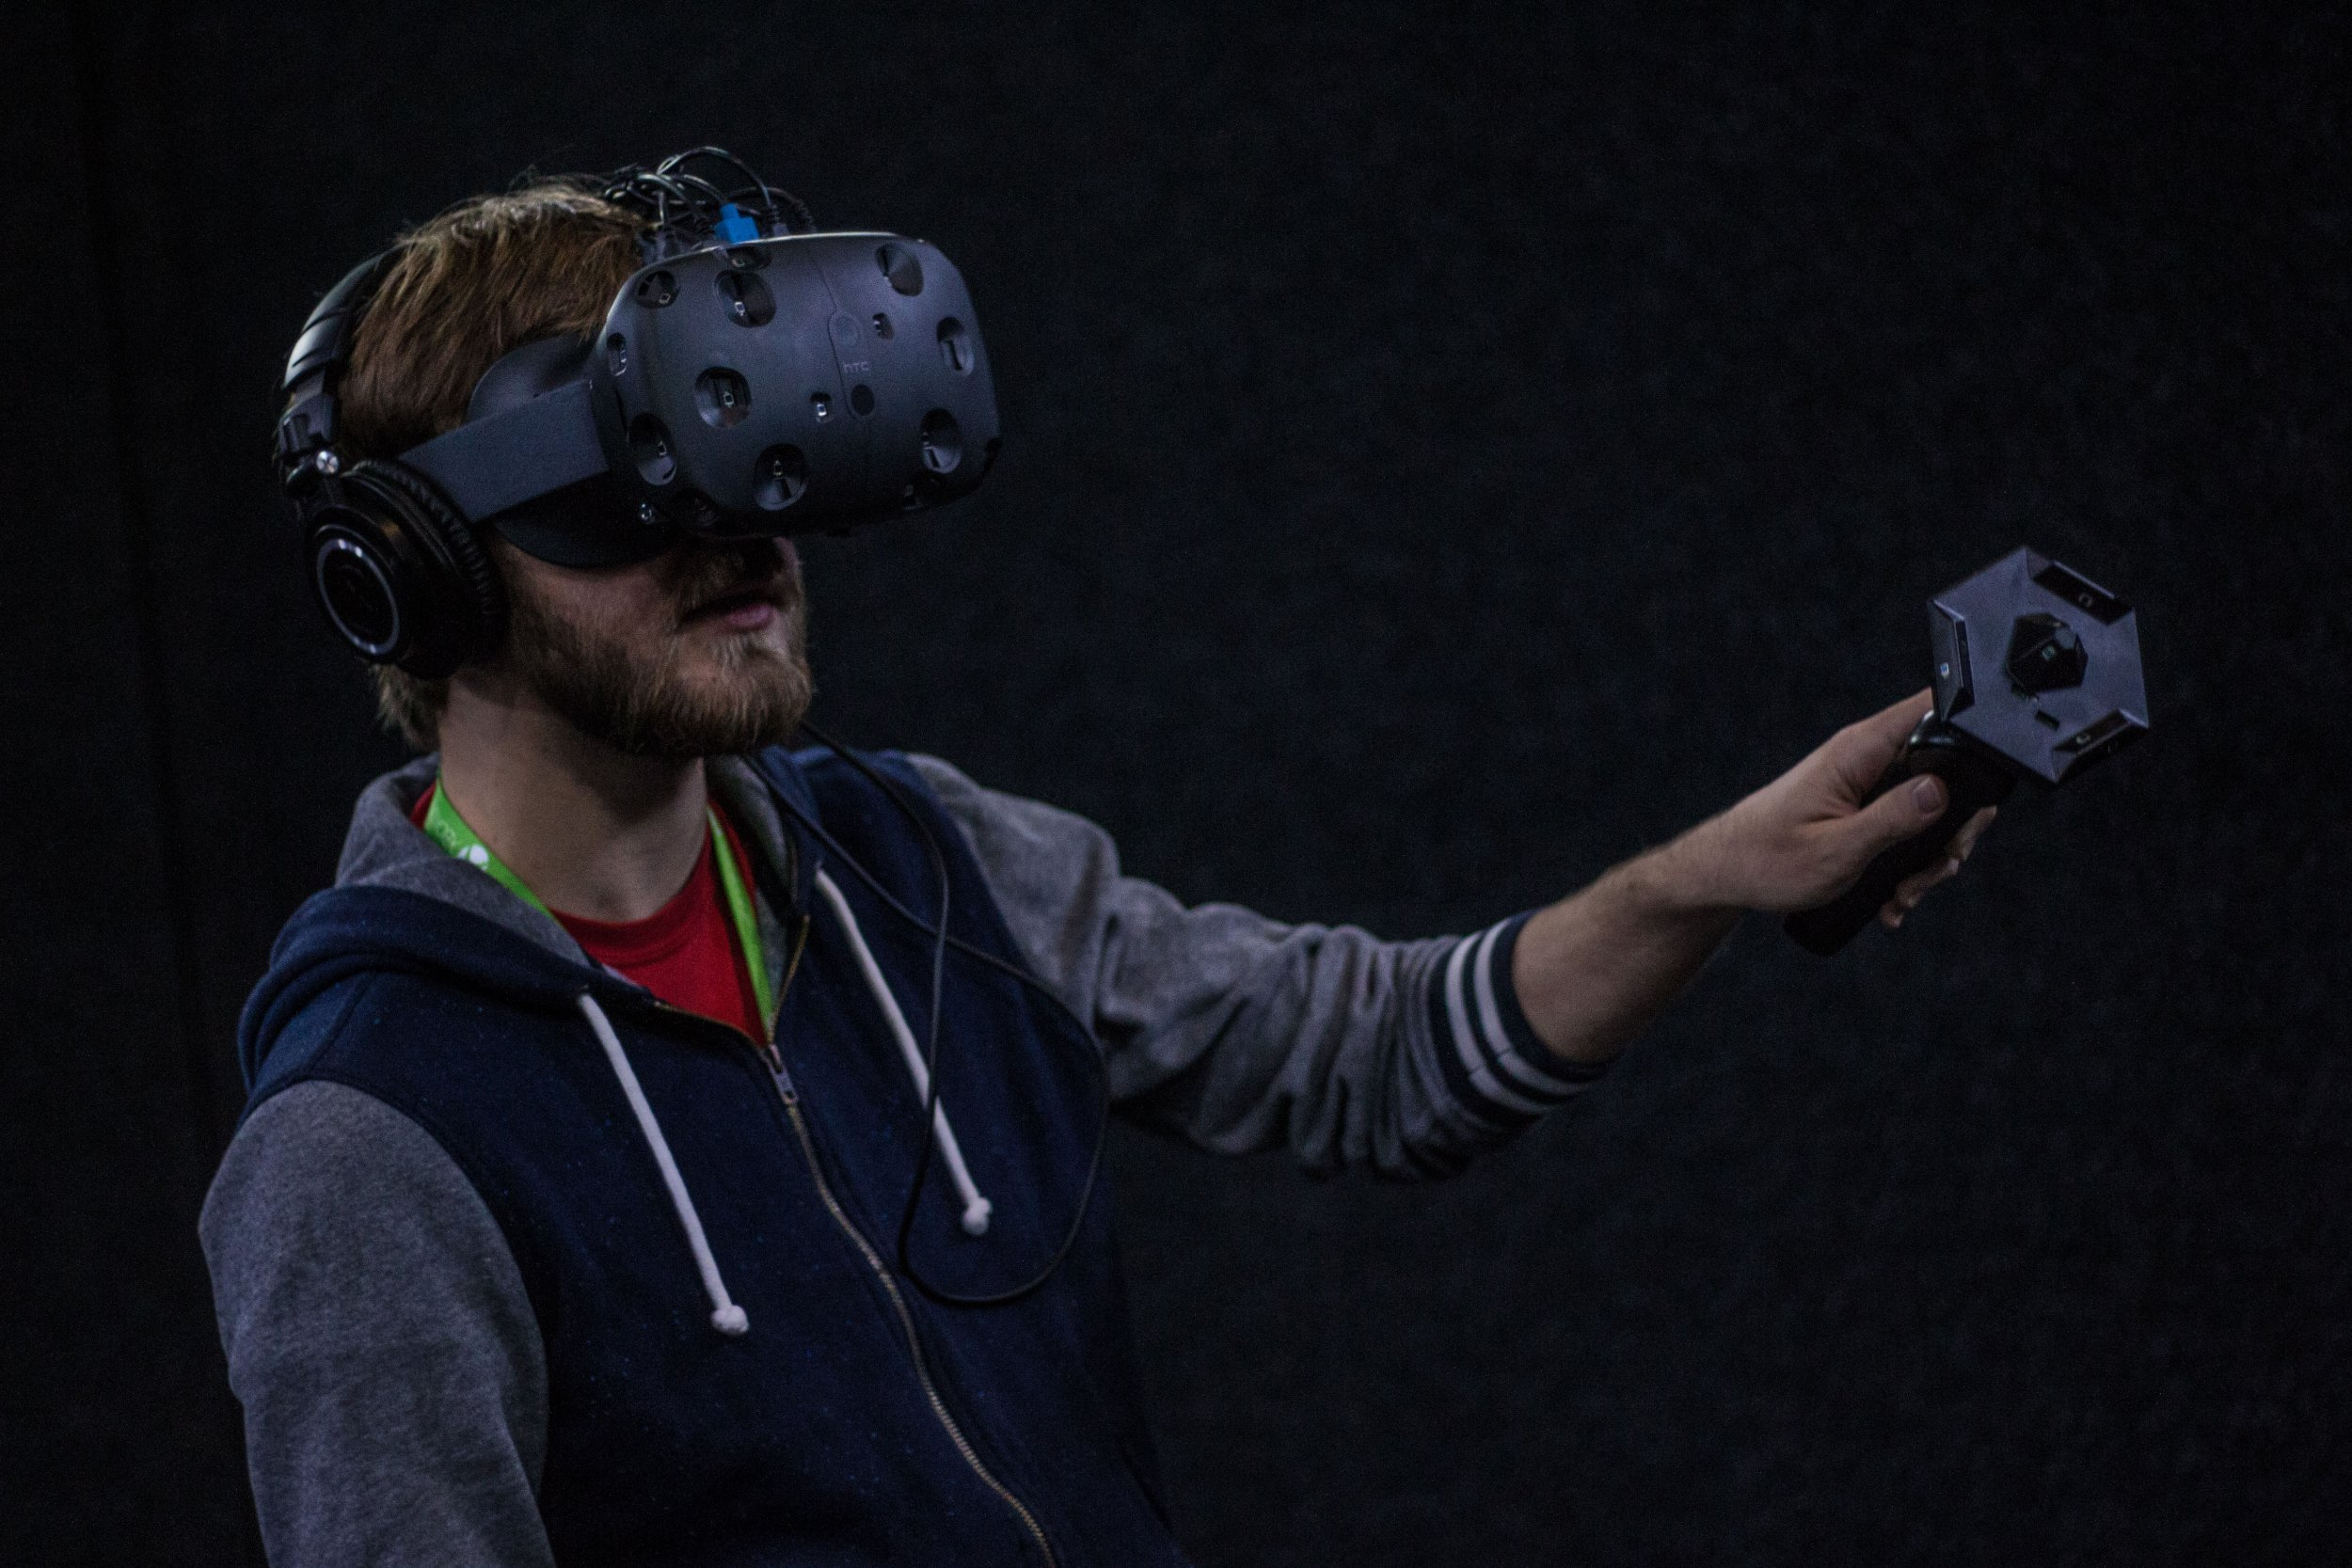 Room Scale VR: What's it all about?